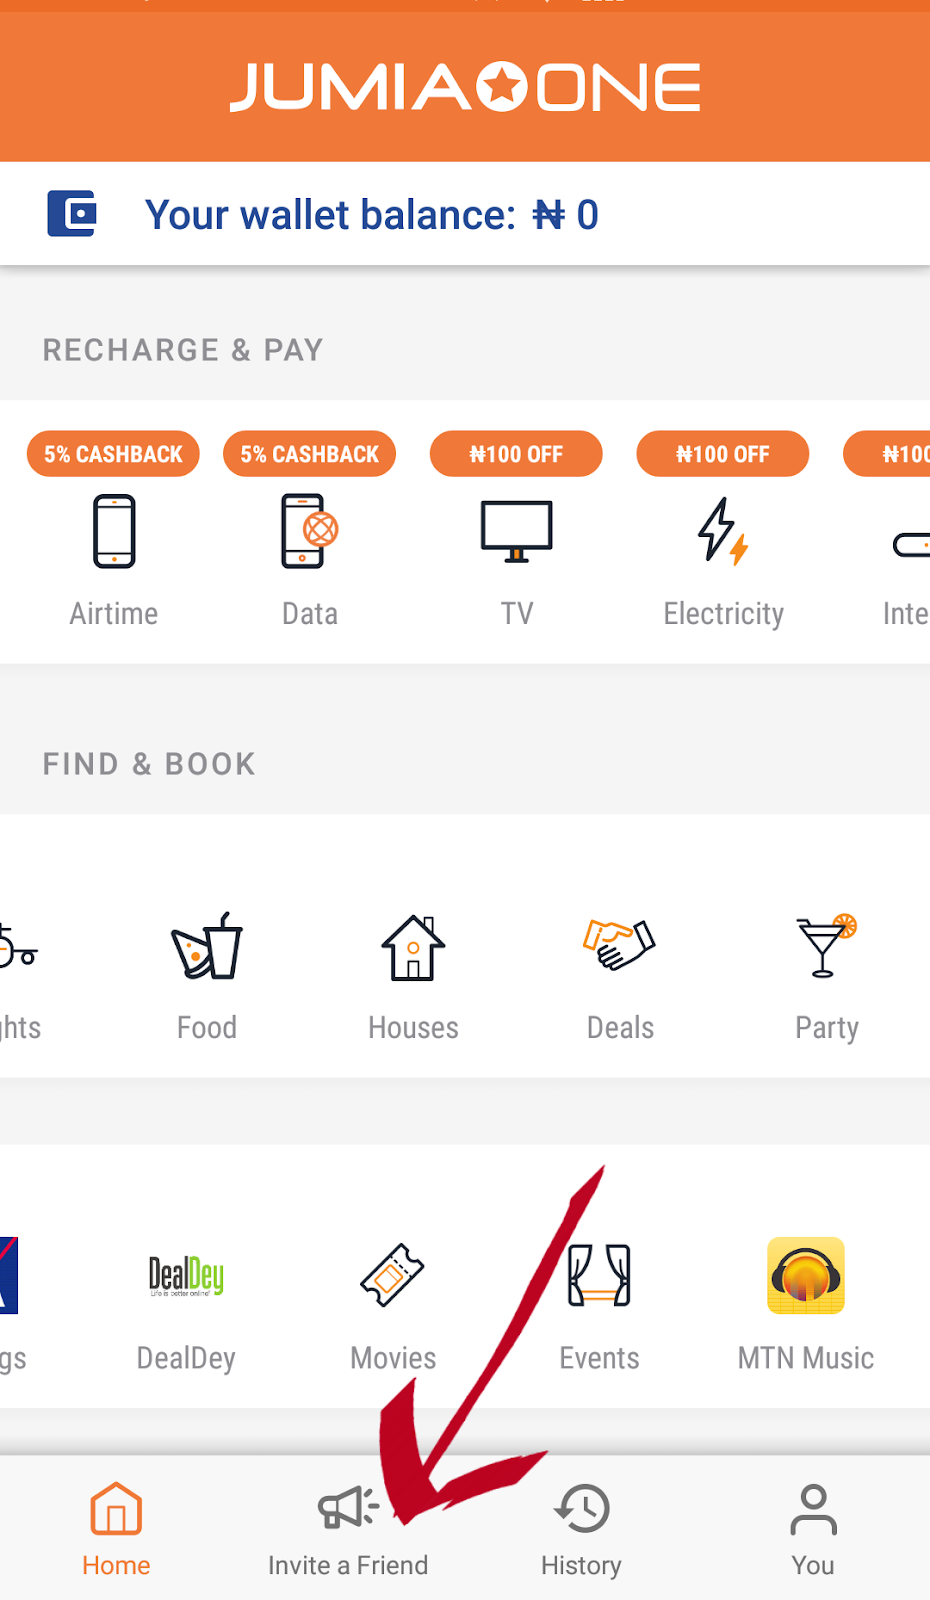 Get N500/N1000 Bonus To Install Jumia One App [UPDATED] - GlobalWeb